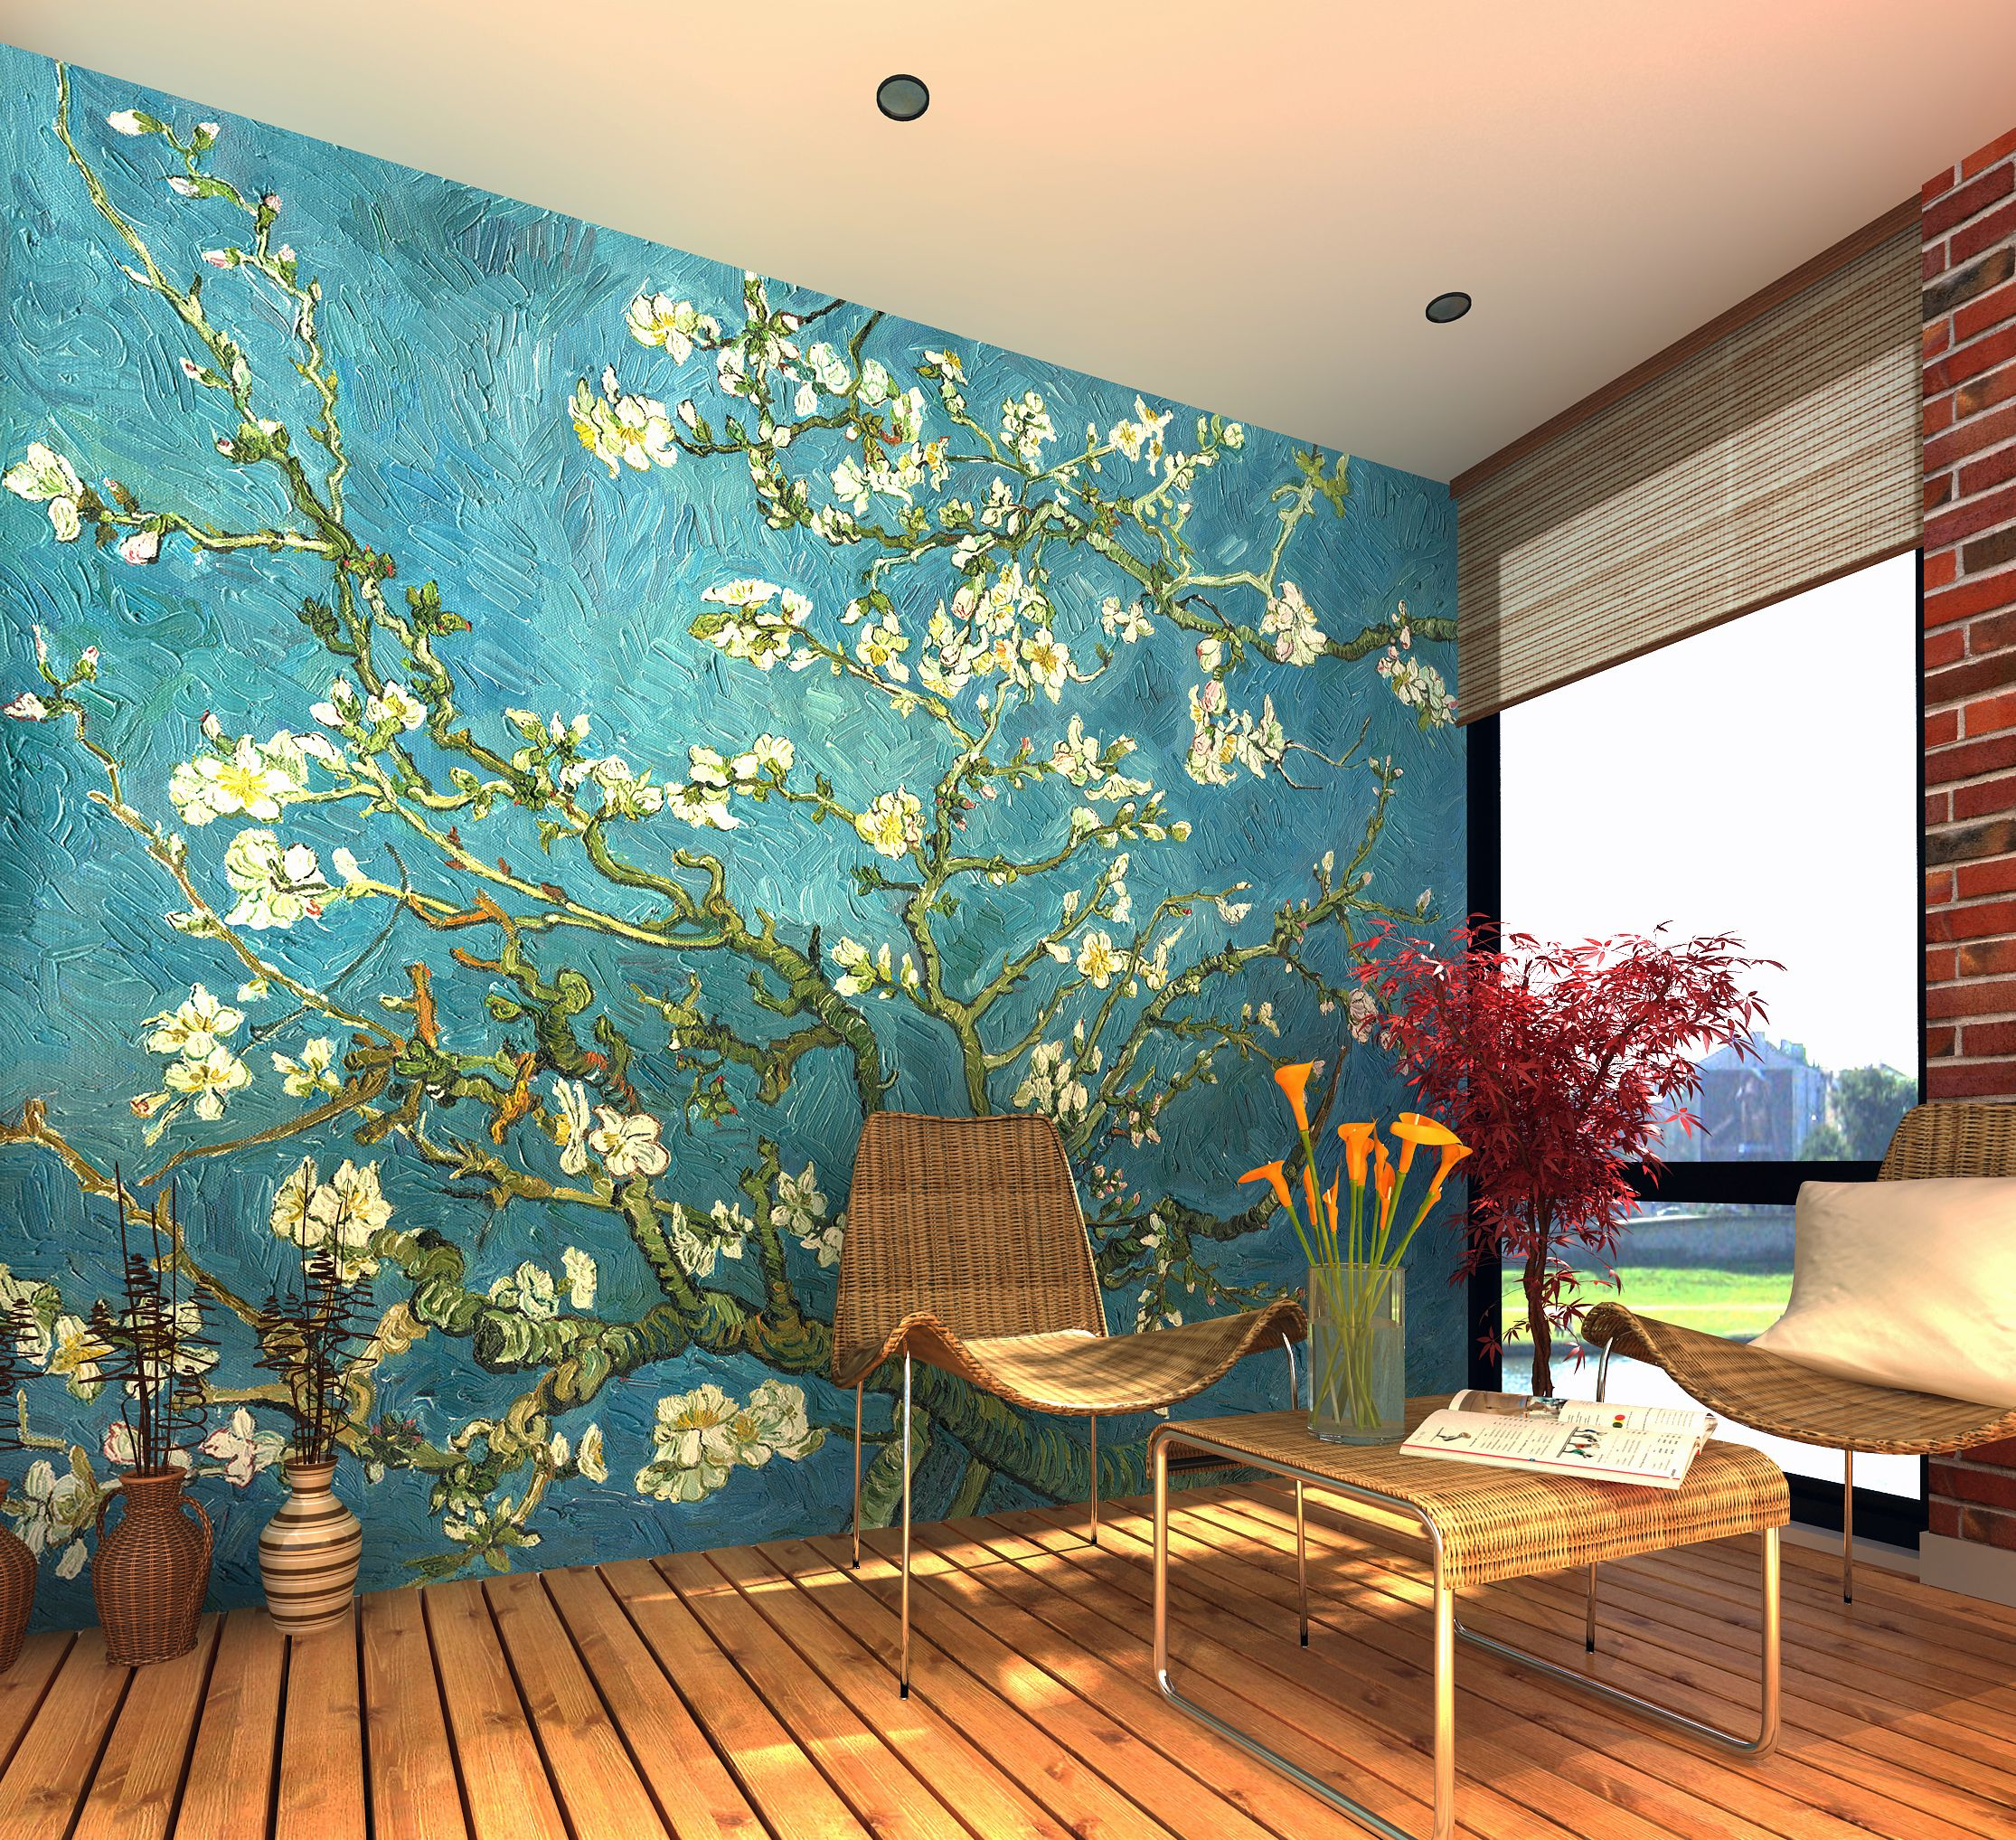 Van gogh almond blossom wall mural wallpaper for House wallpaper designs